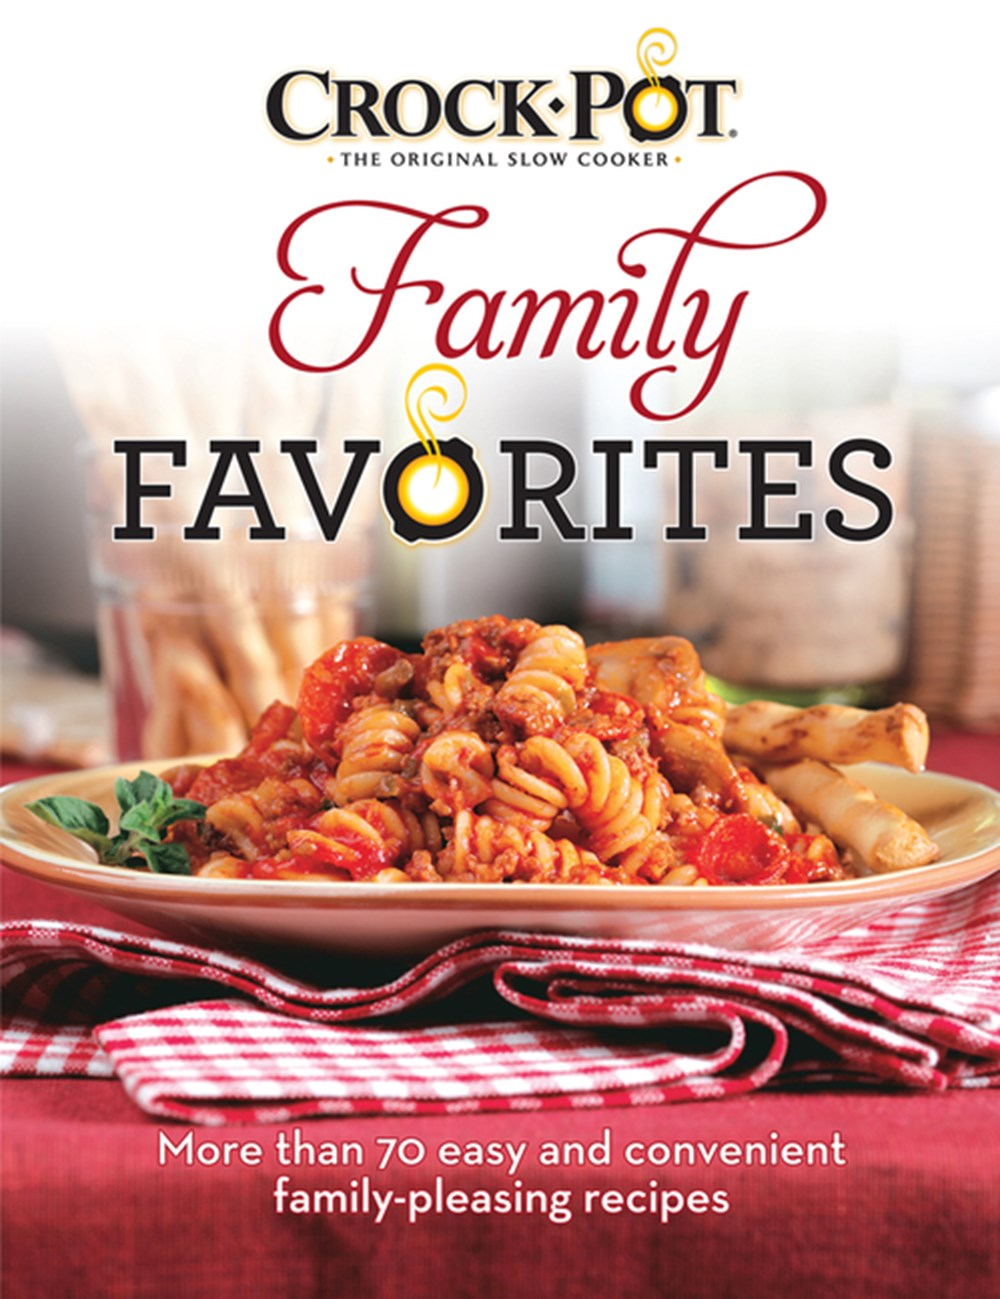 Crock-Pot Family Favorites More Than 70 Easy and Convenient Family-Pleasing Recipes